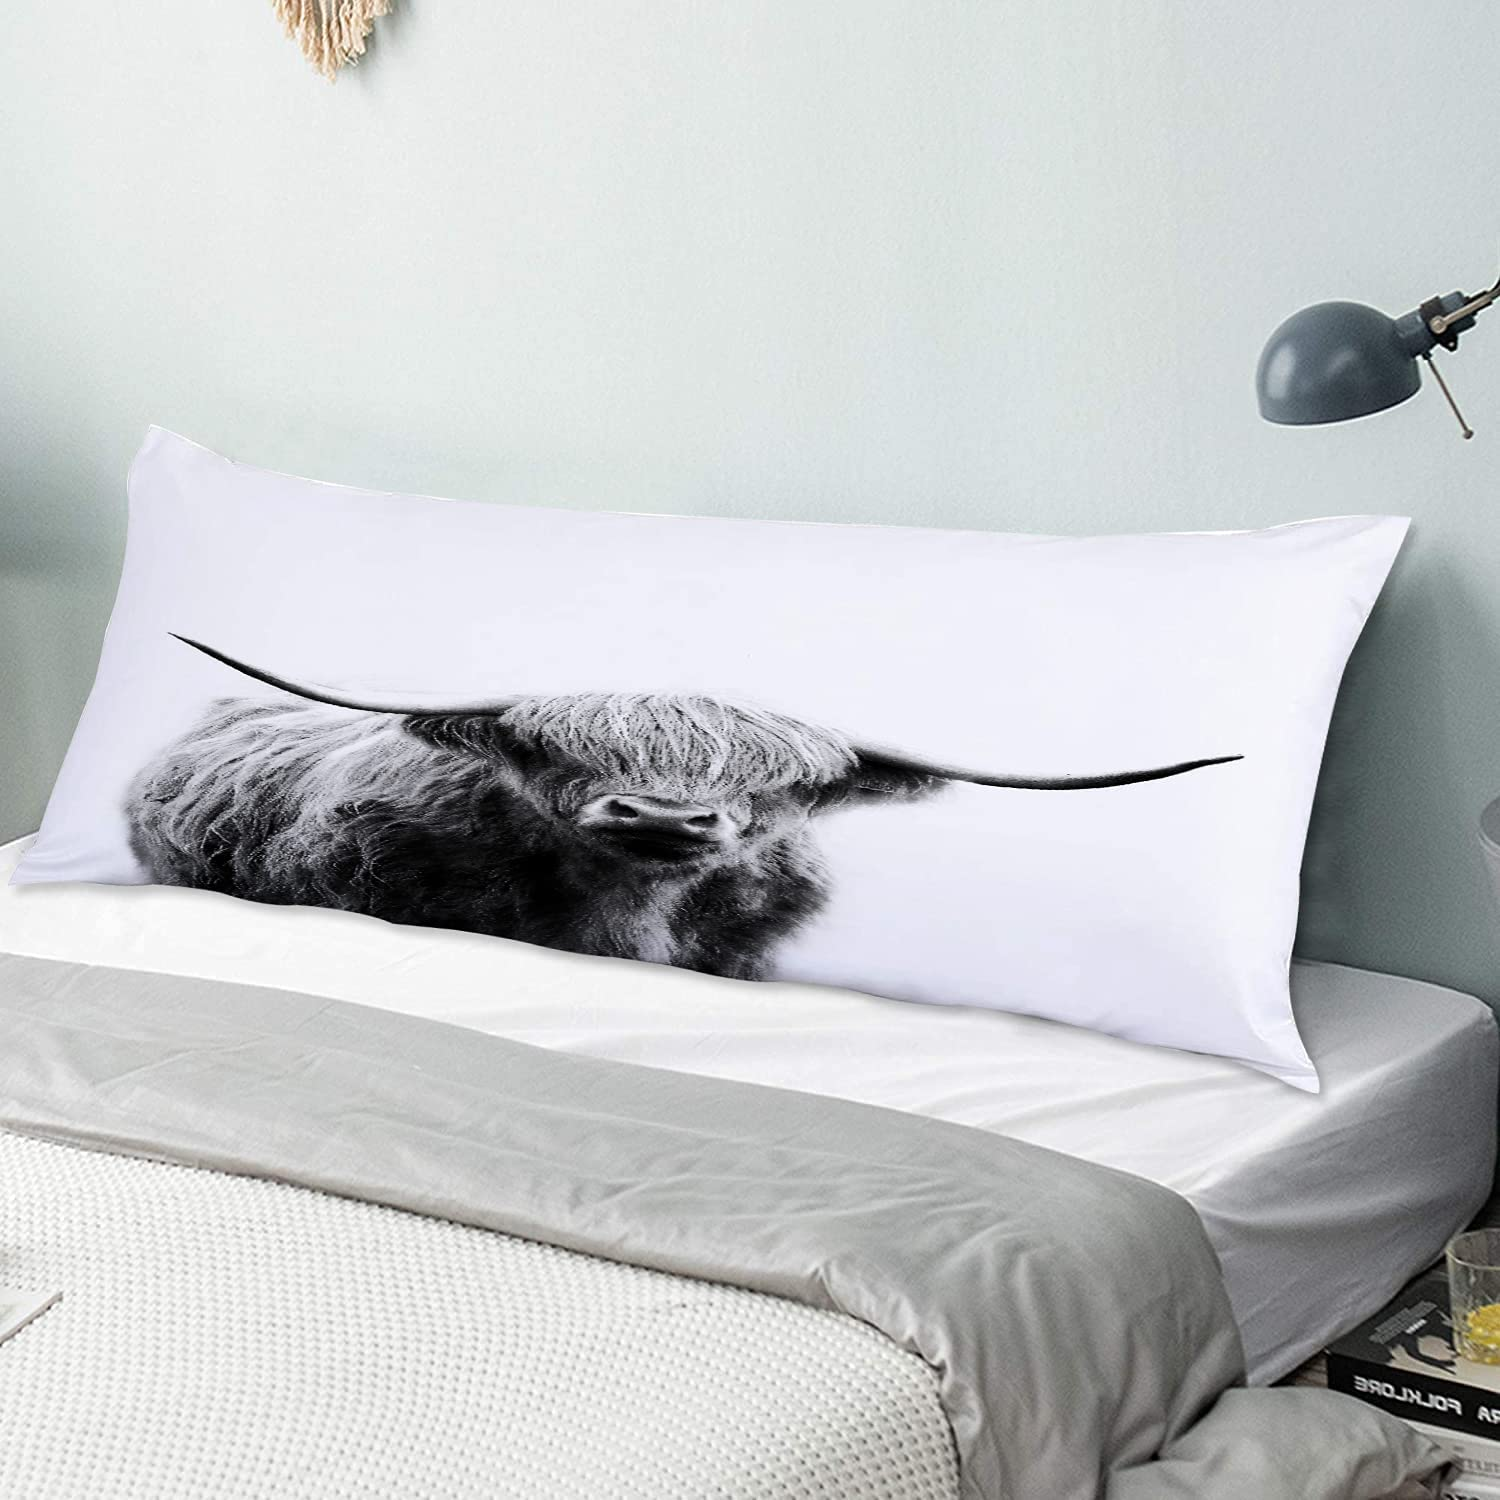 NINEHASA Body Pillow Pillowcase Animal Ult Decorative Cow Max Same day shipping 41% OFF Cattle